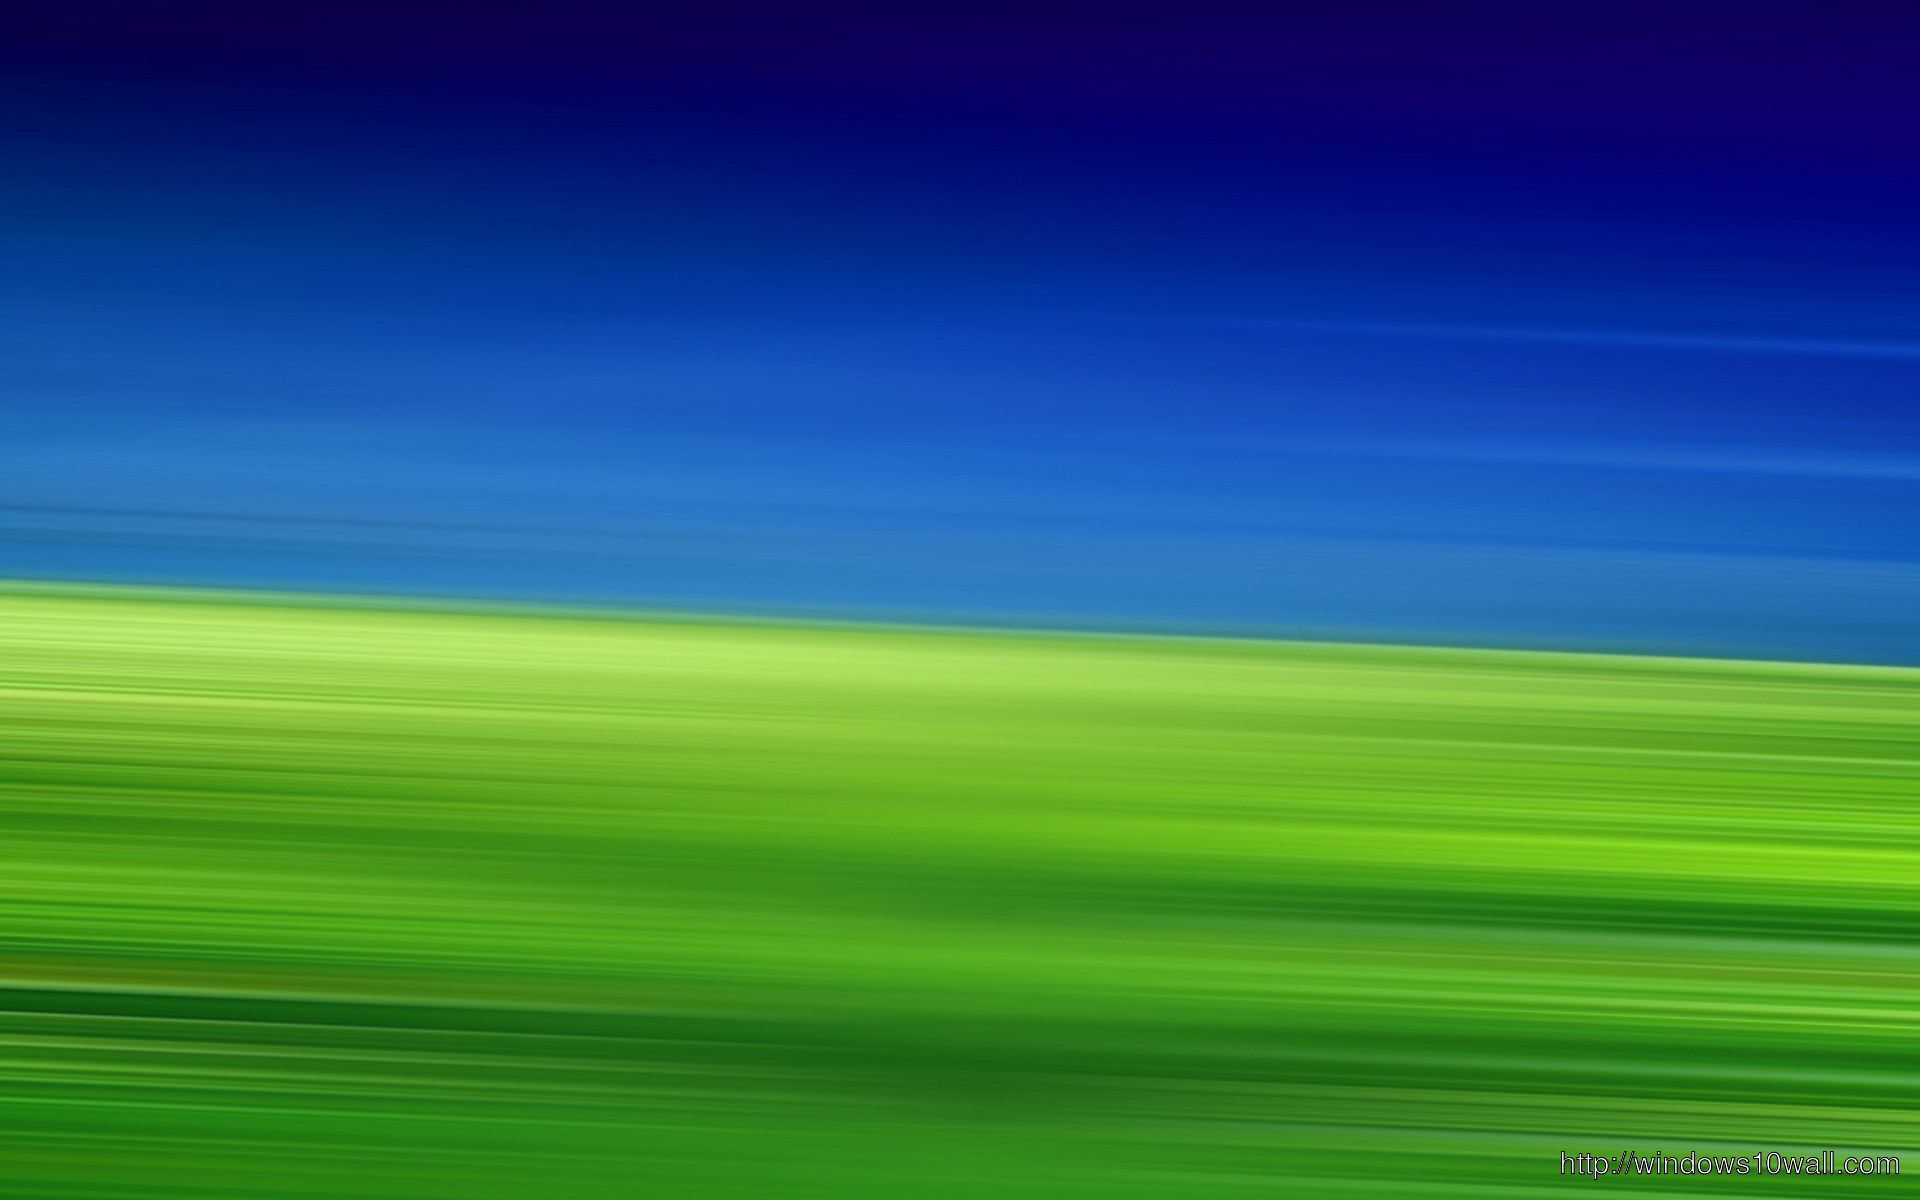 Abstract Background Wallpaper Green And Blue Windows 10